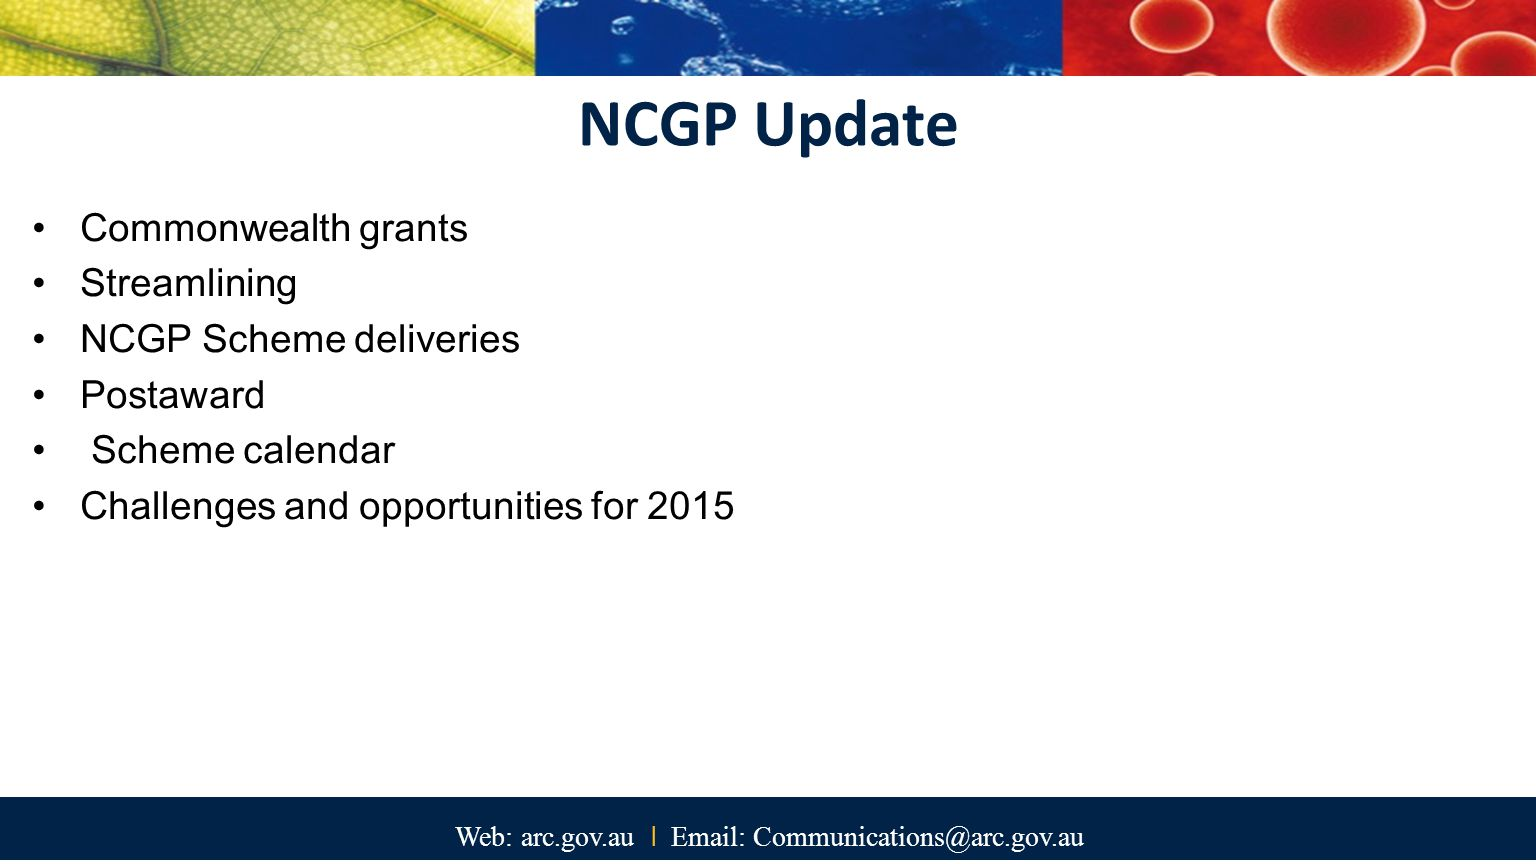 Web: arc.gov.au I Email: Communications@arc.gov.au Commonwealth grants In 2012-2013 41 Commonwealth entities provided grants through 791 grant programmes 405 grant rounds advertised 62,634 grant applications submitted Over 12 million pages of grant applications submitted 26,377 grants awarded